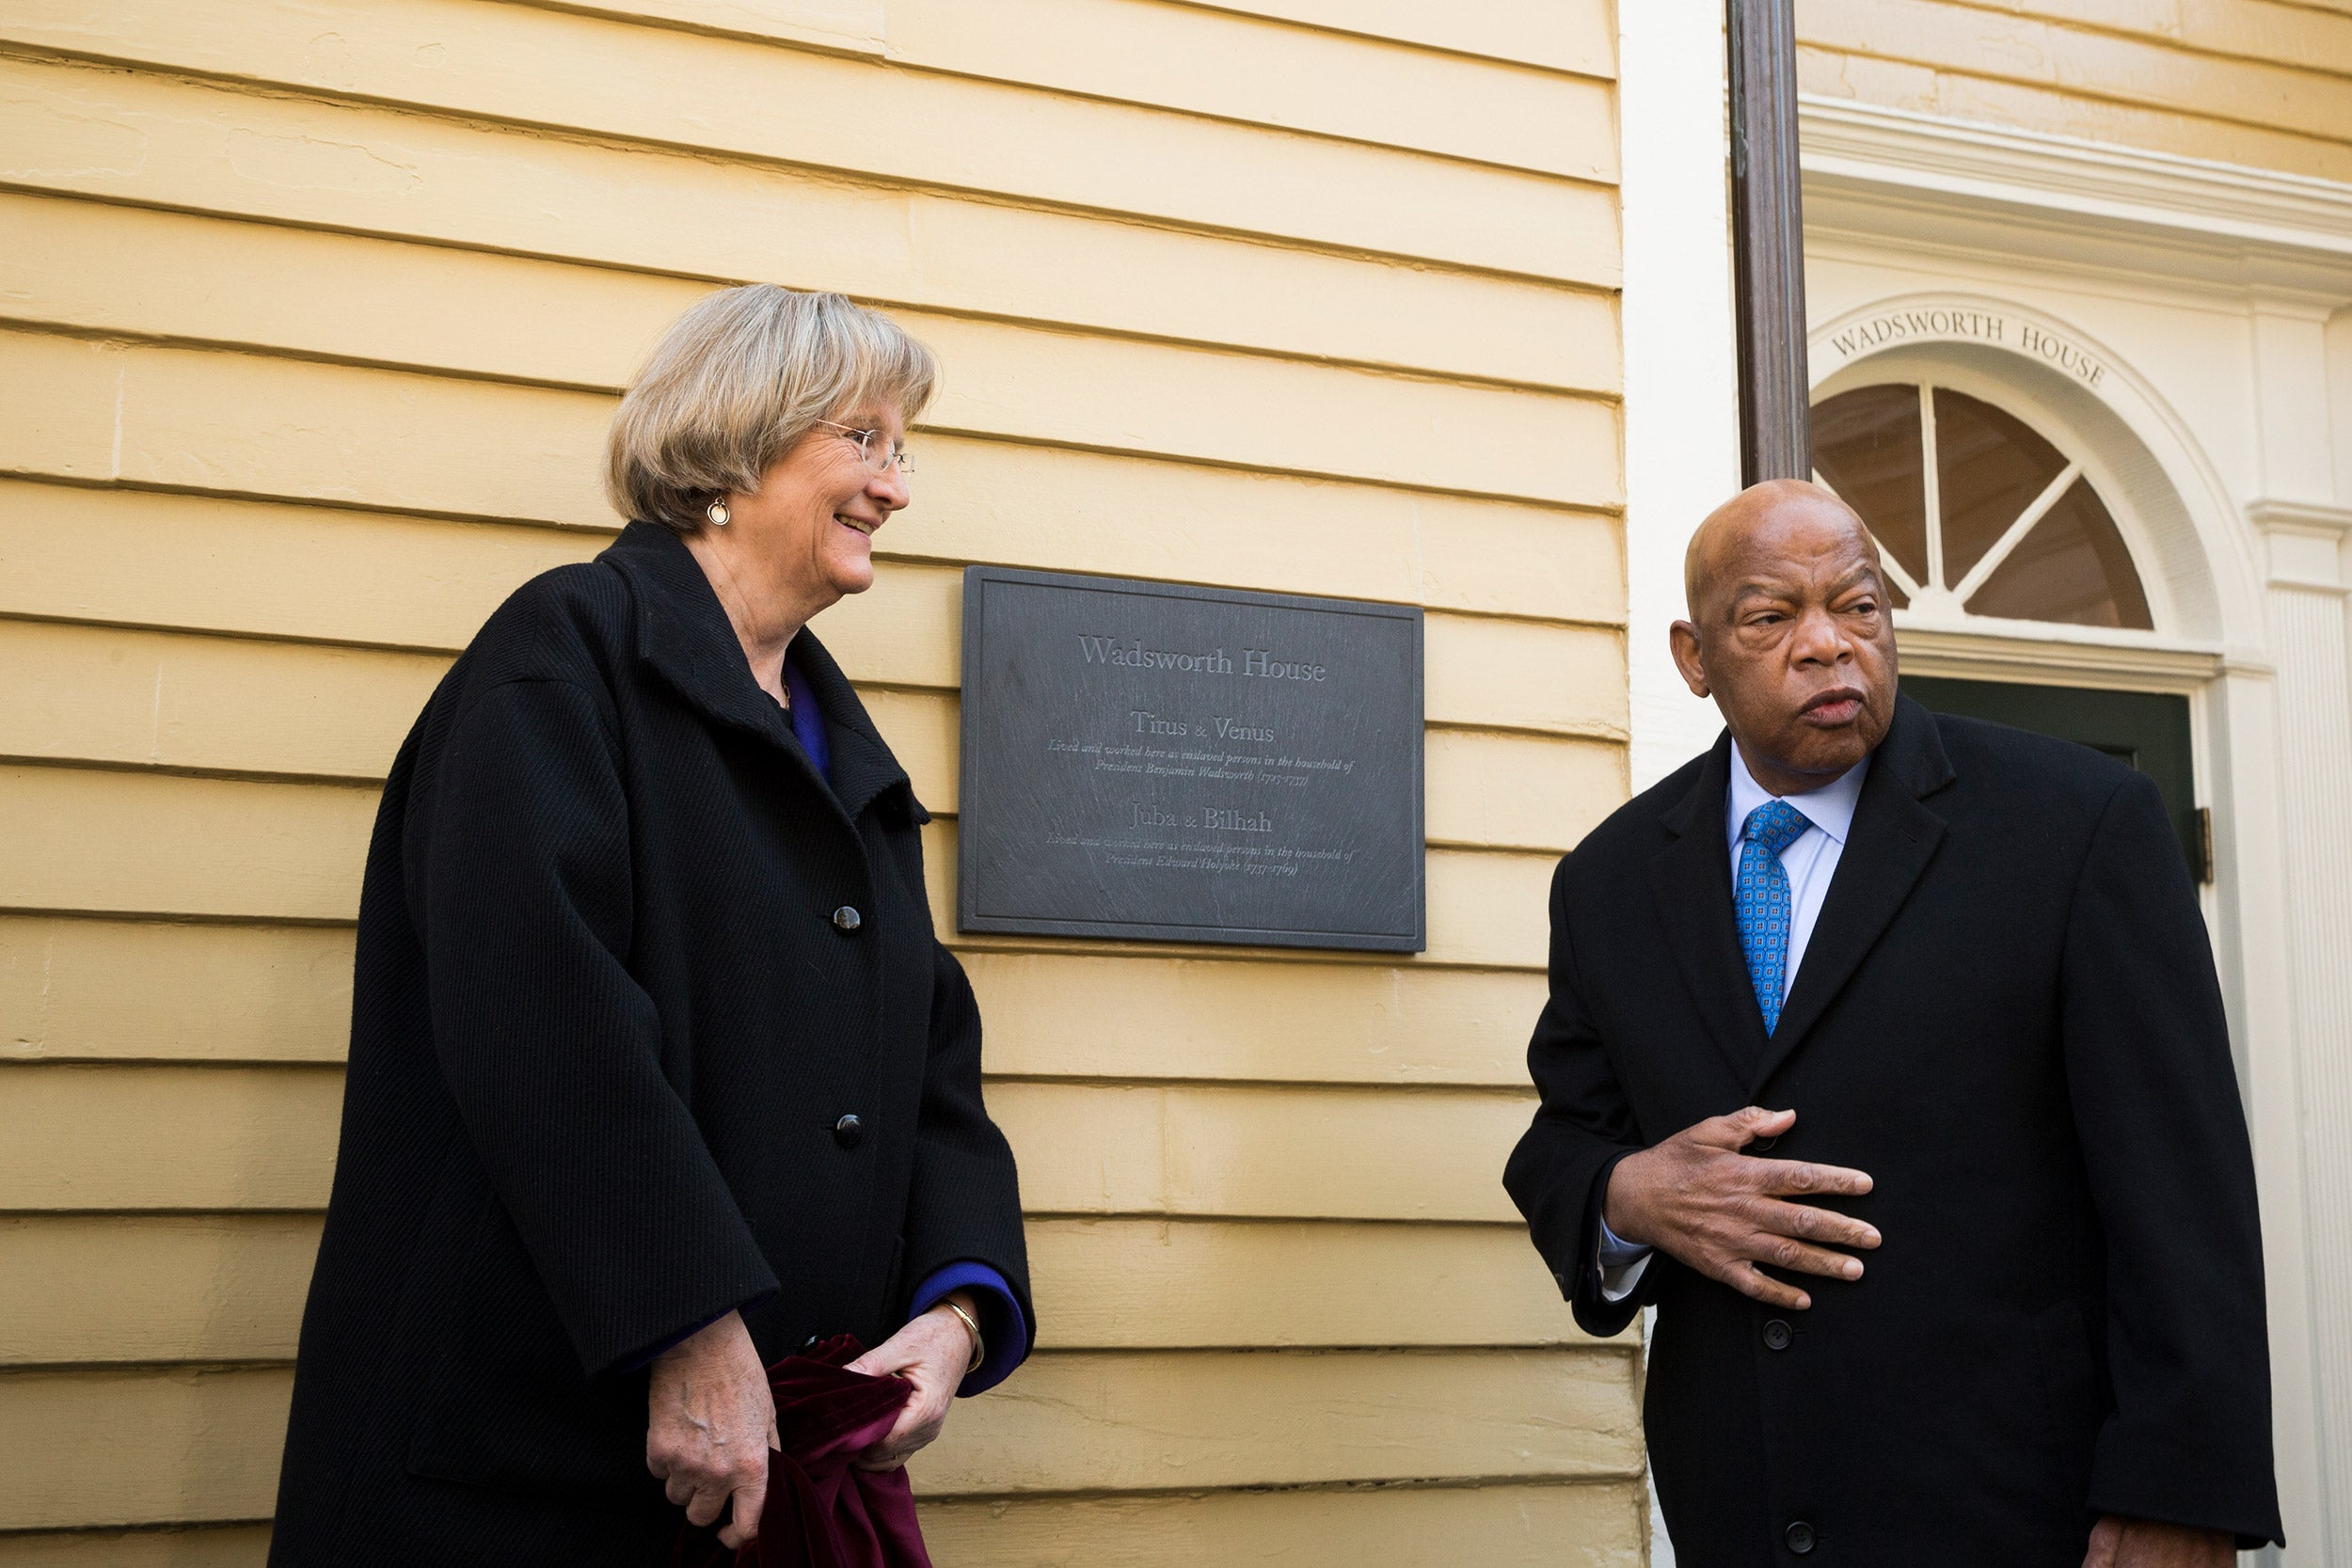 Harvard President Drew Faust and Congressman John Lewis unveil a plaque that recognizes four slaves who worked at Wadsworth House.